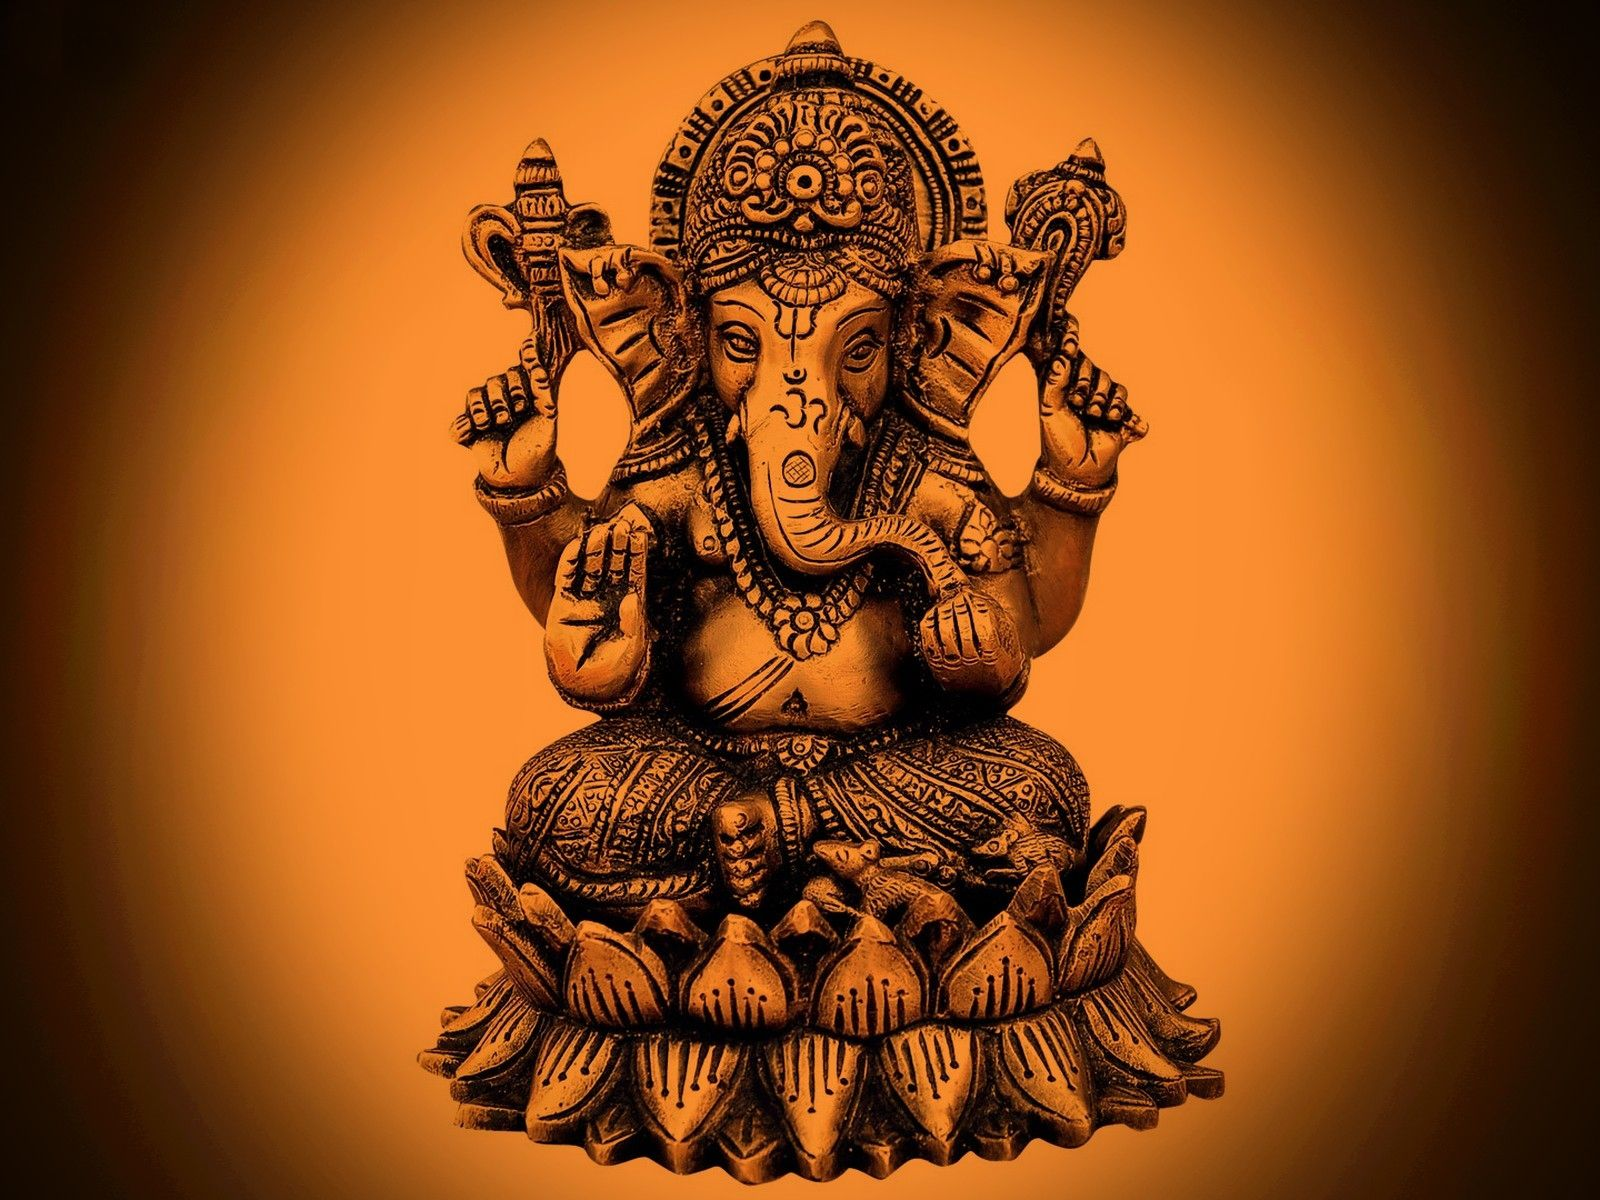 Shree Ganesh Hd Images: Ganesha Bhagvan Hd Wallpaper Free Download 1080p